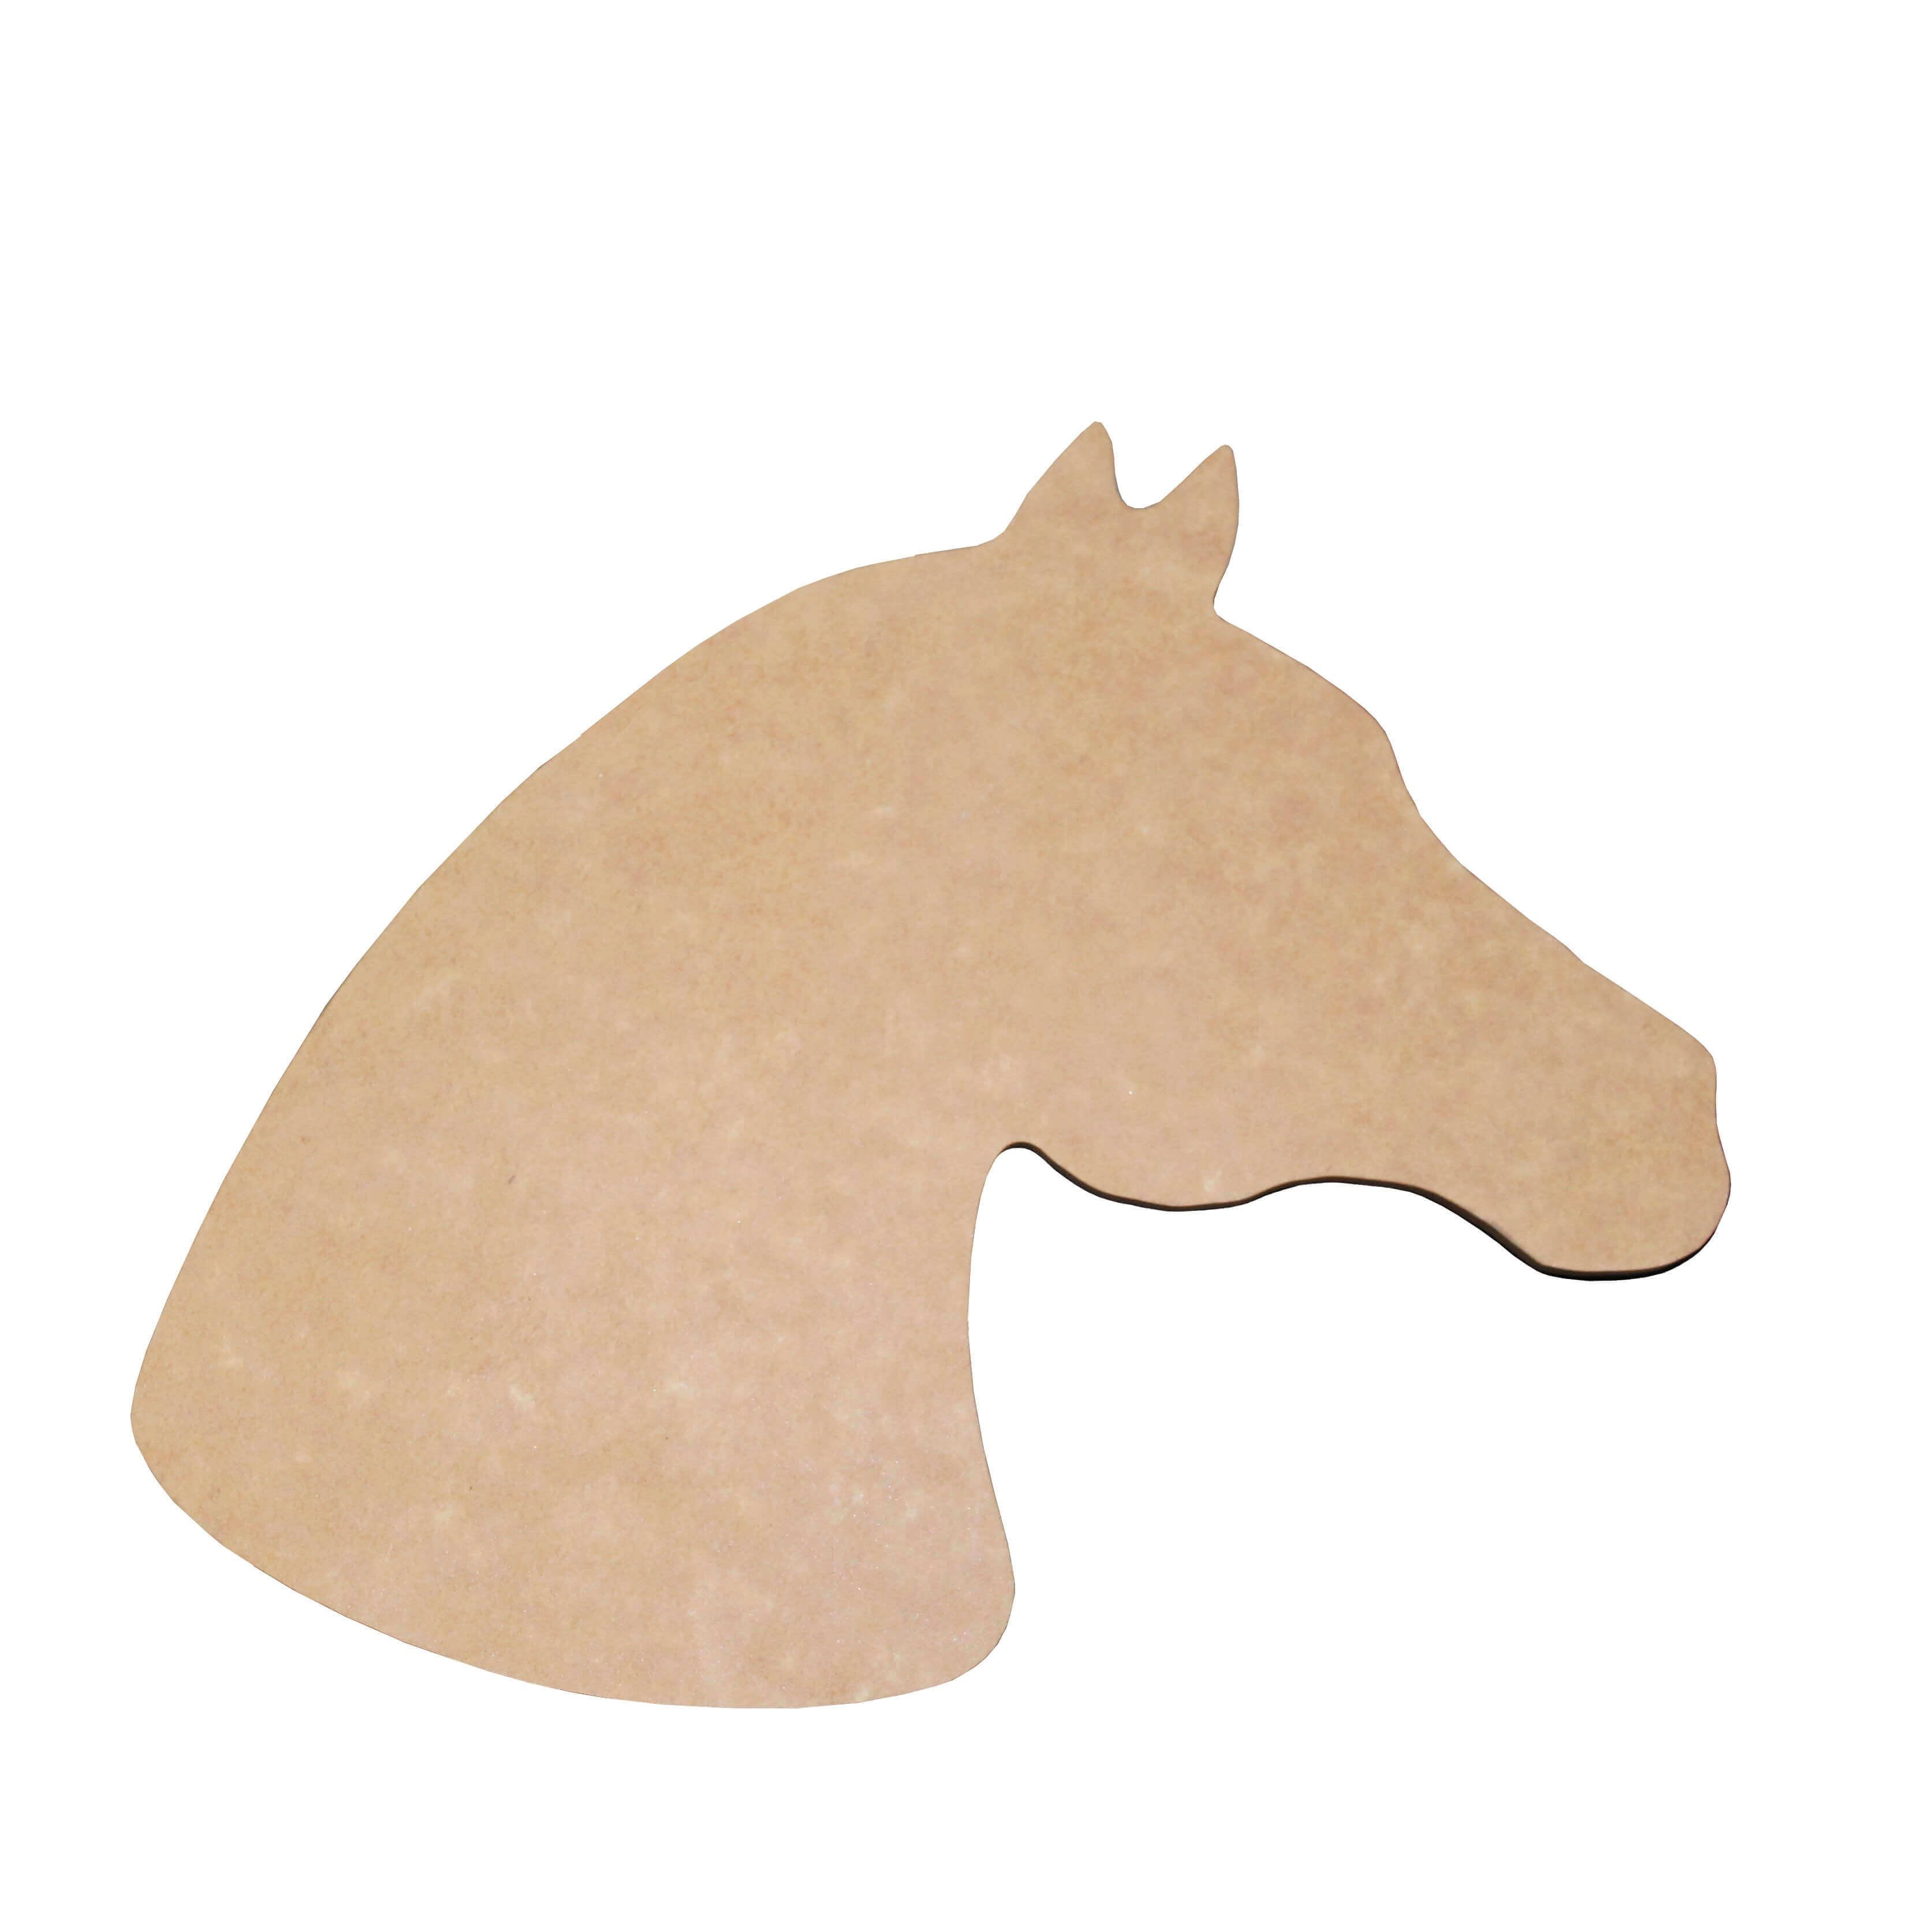 horse-head-cutting-board.jpg